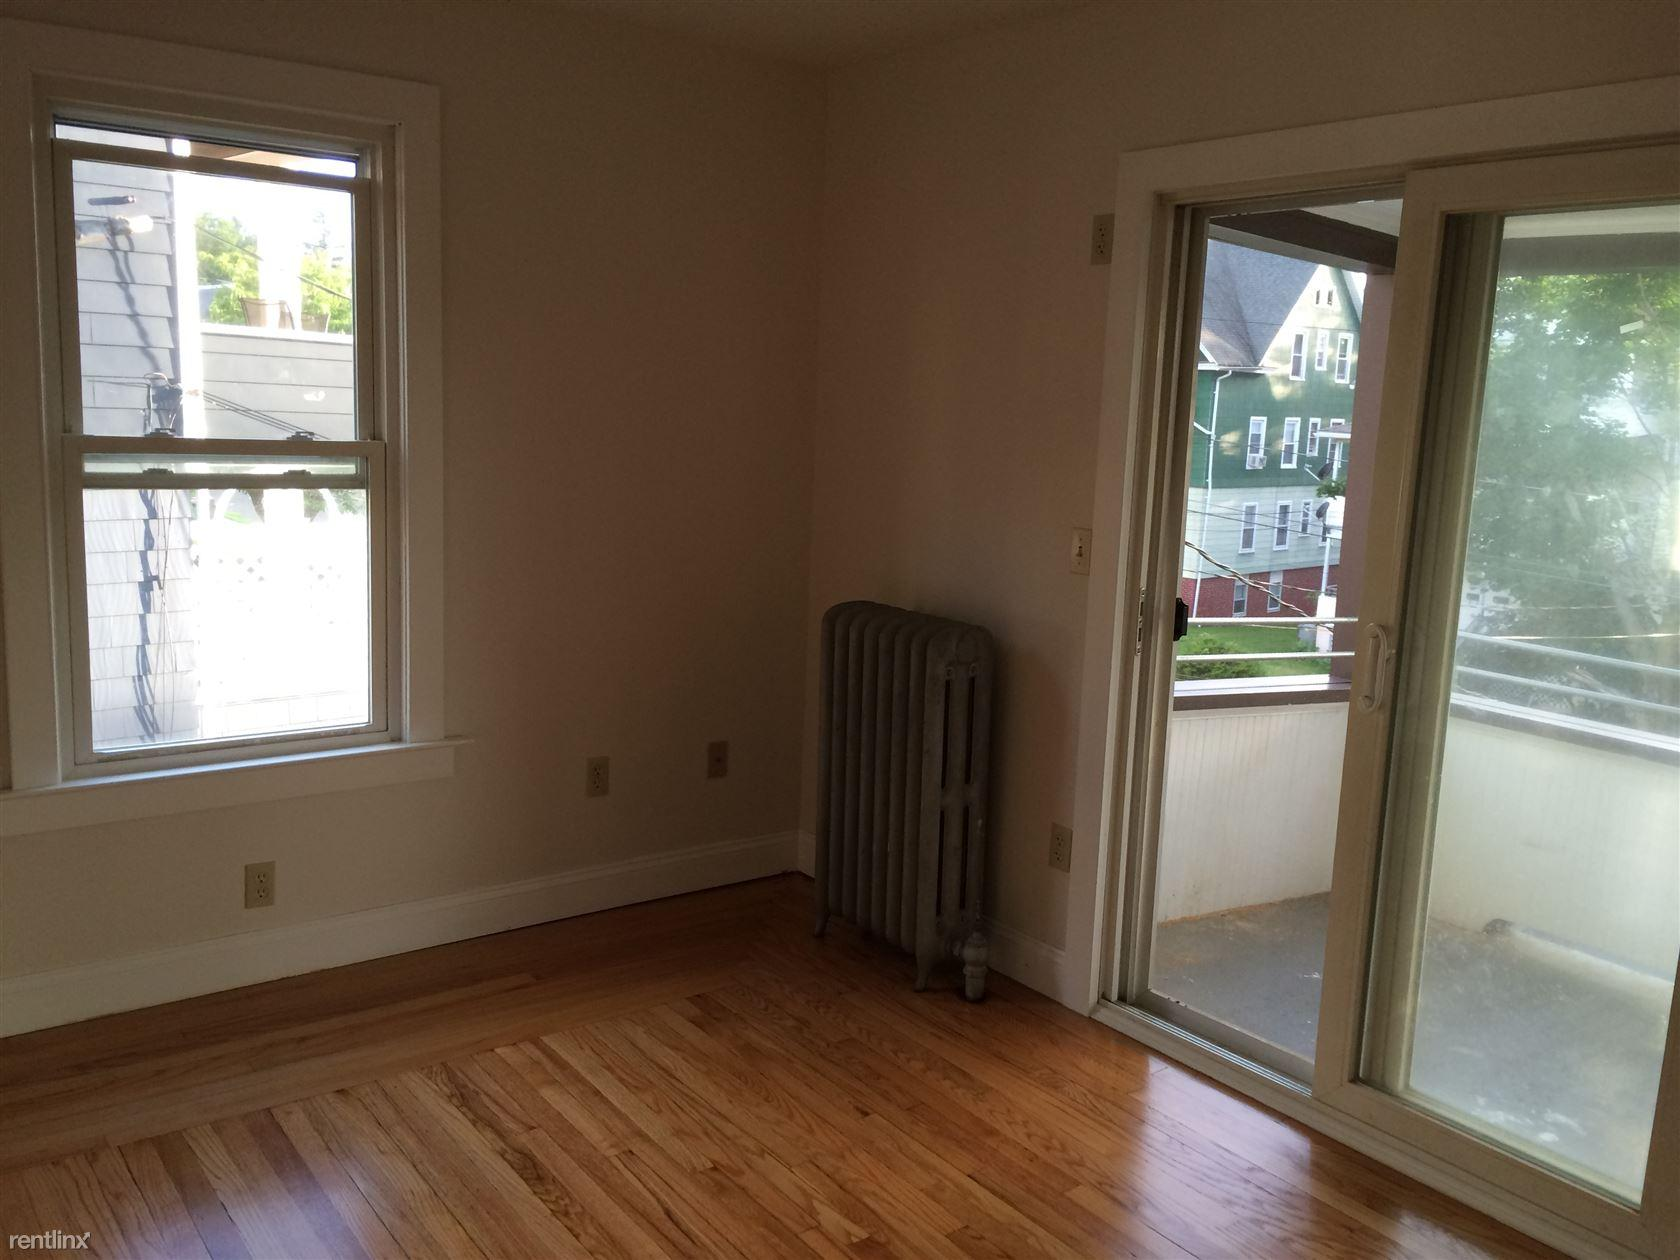 2 Bedroom Apartments In Bristol Ct Www Stkittsvilla Com